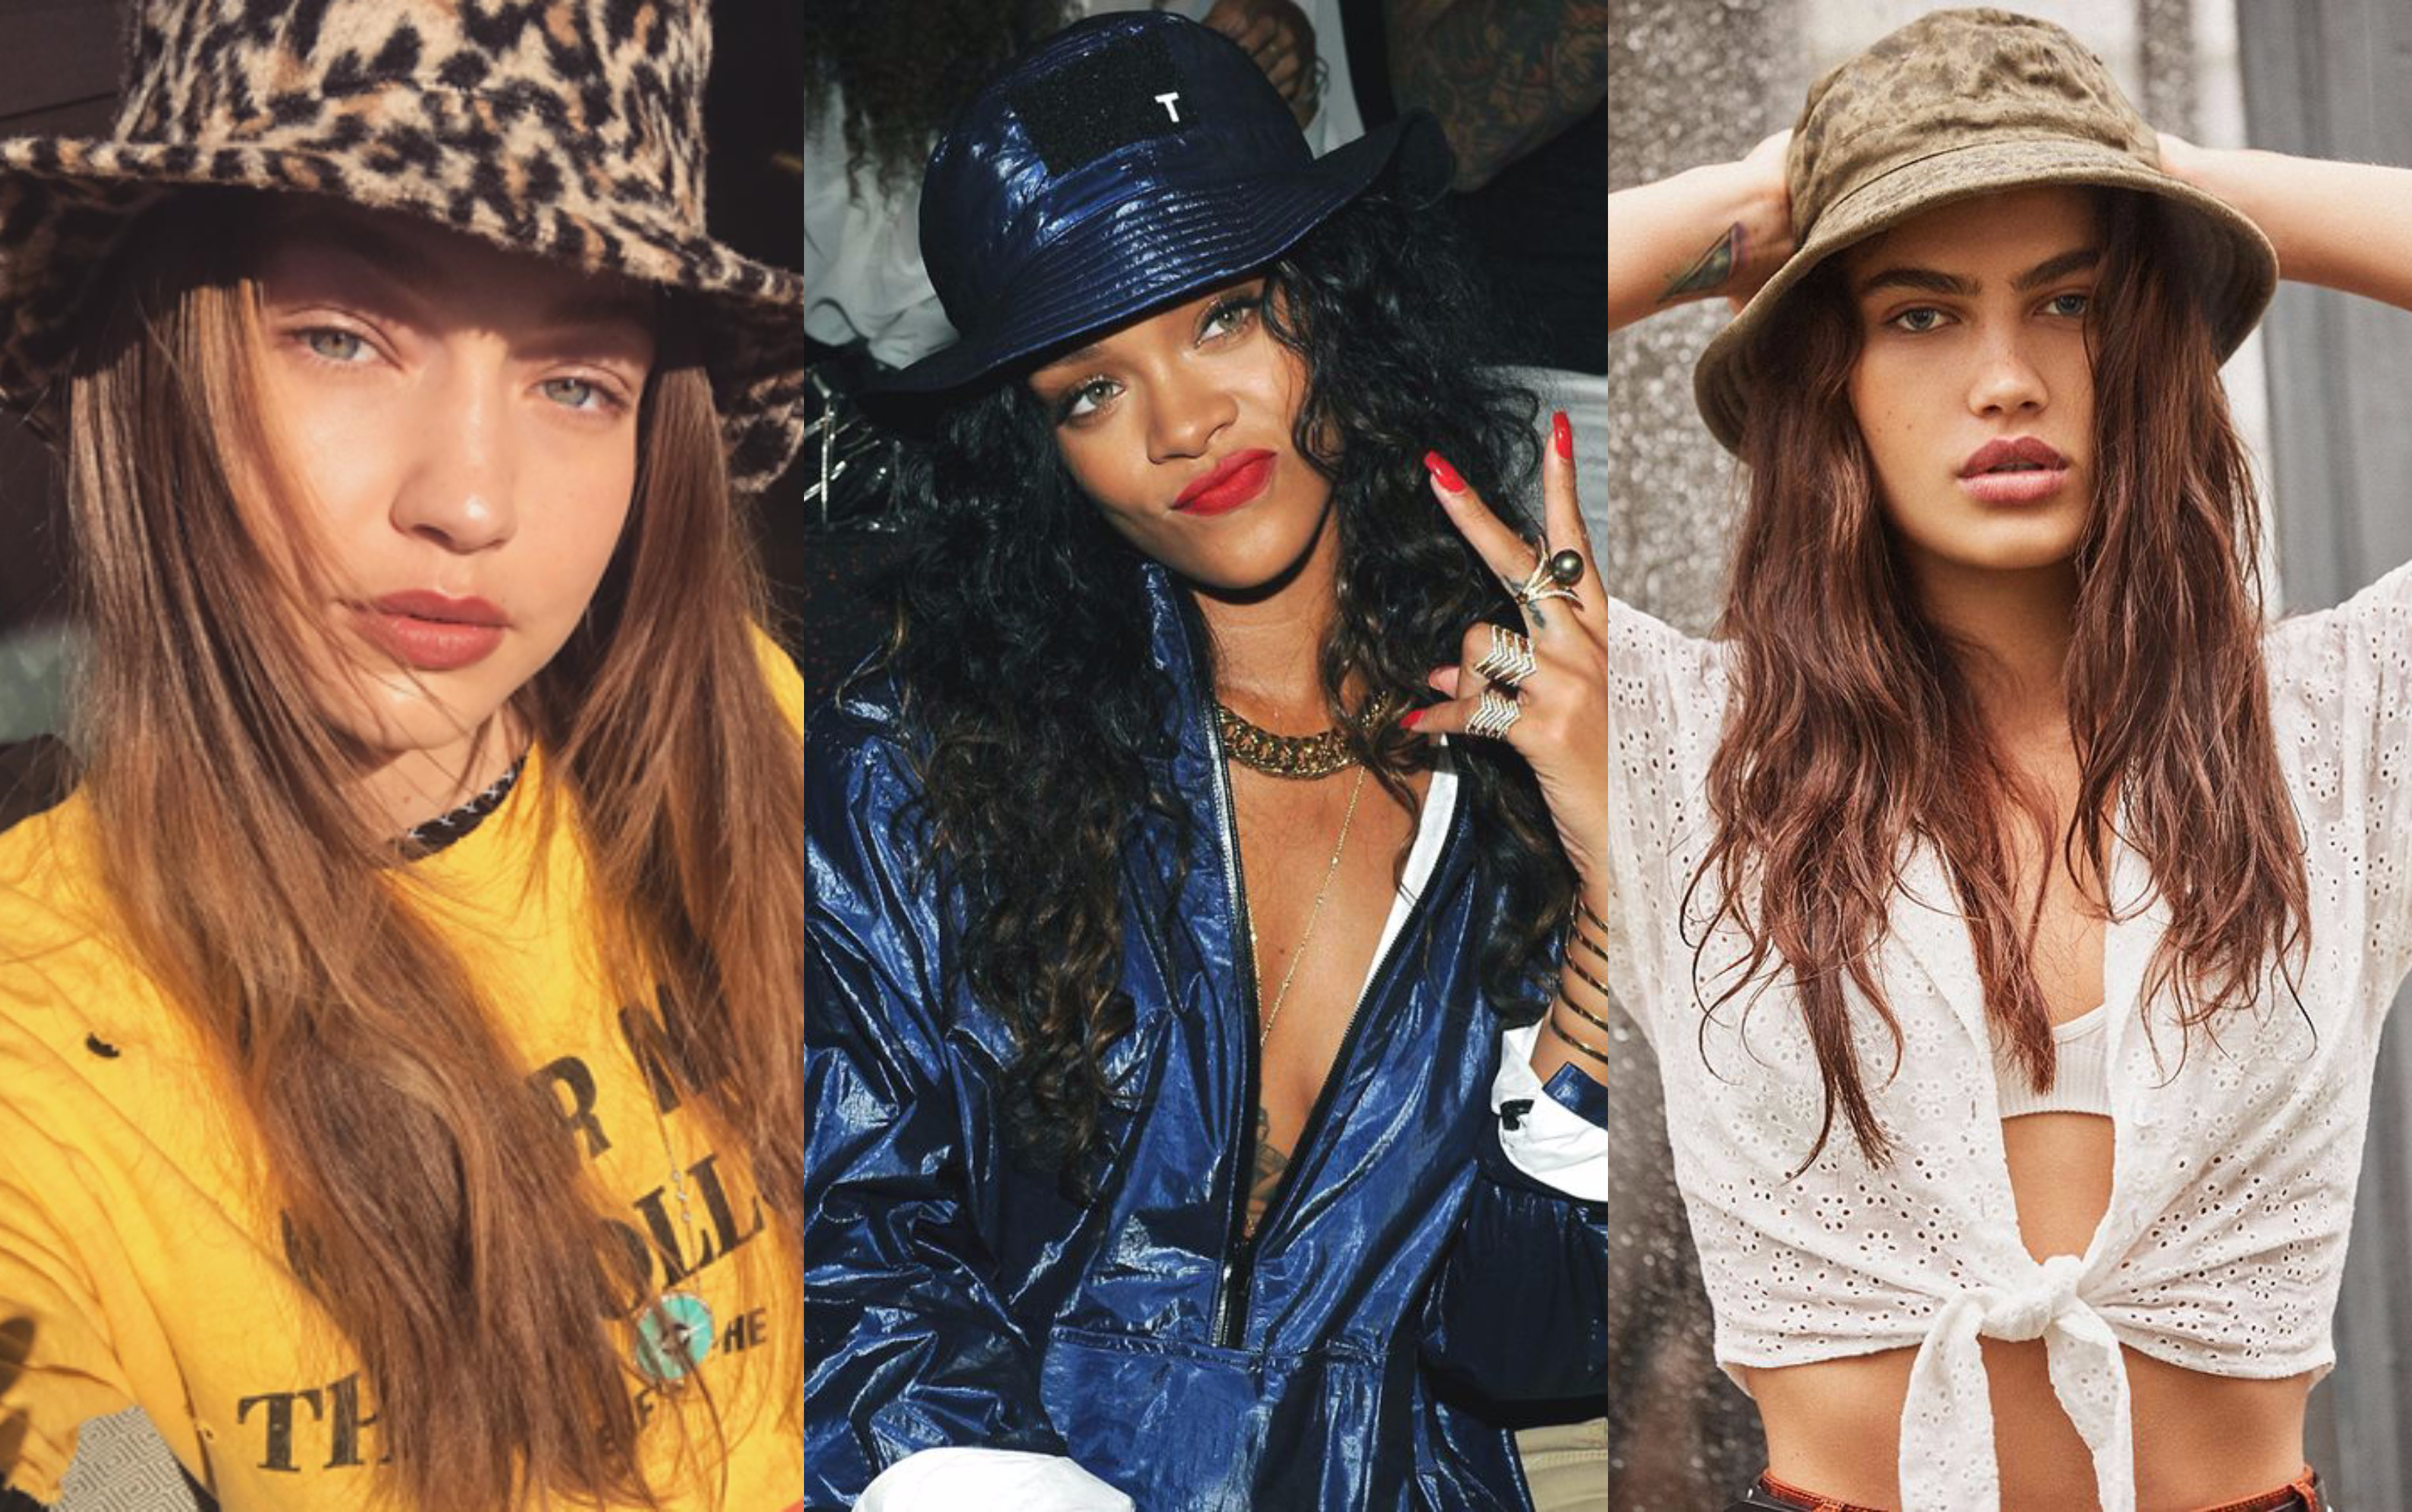 f2d13cdc Though certainly a controversial style, bucket hats have made their way  back into popularity within fashion. As the 90's revival continues to  dominate the ...